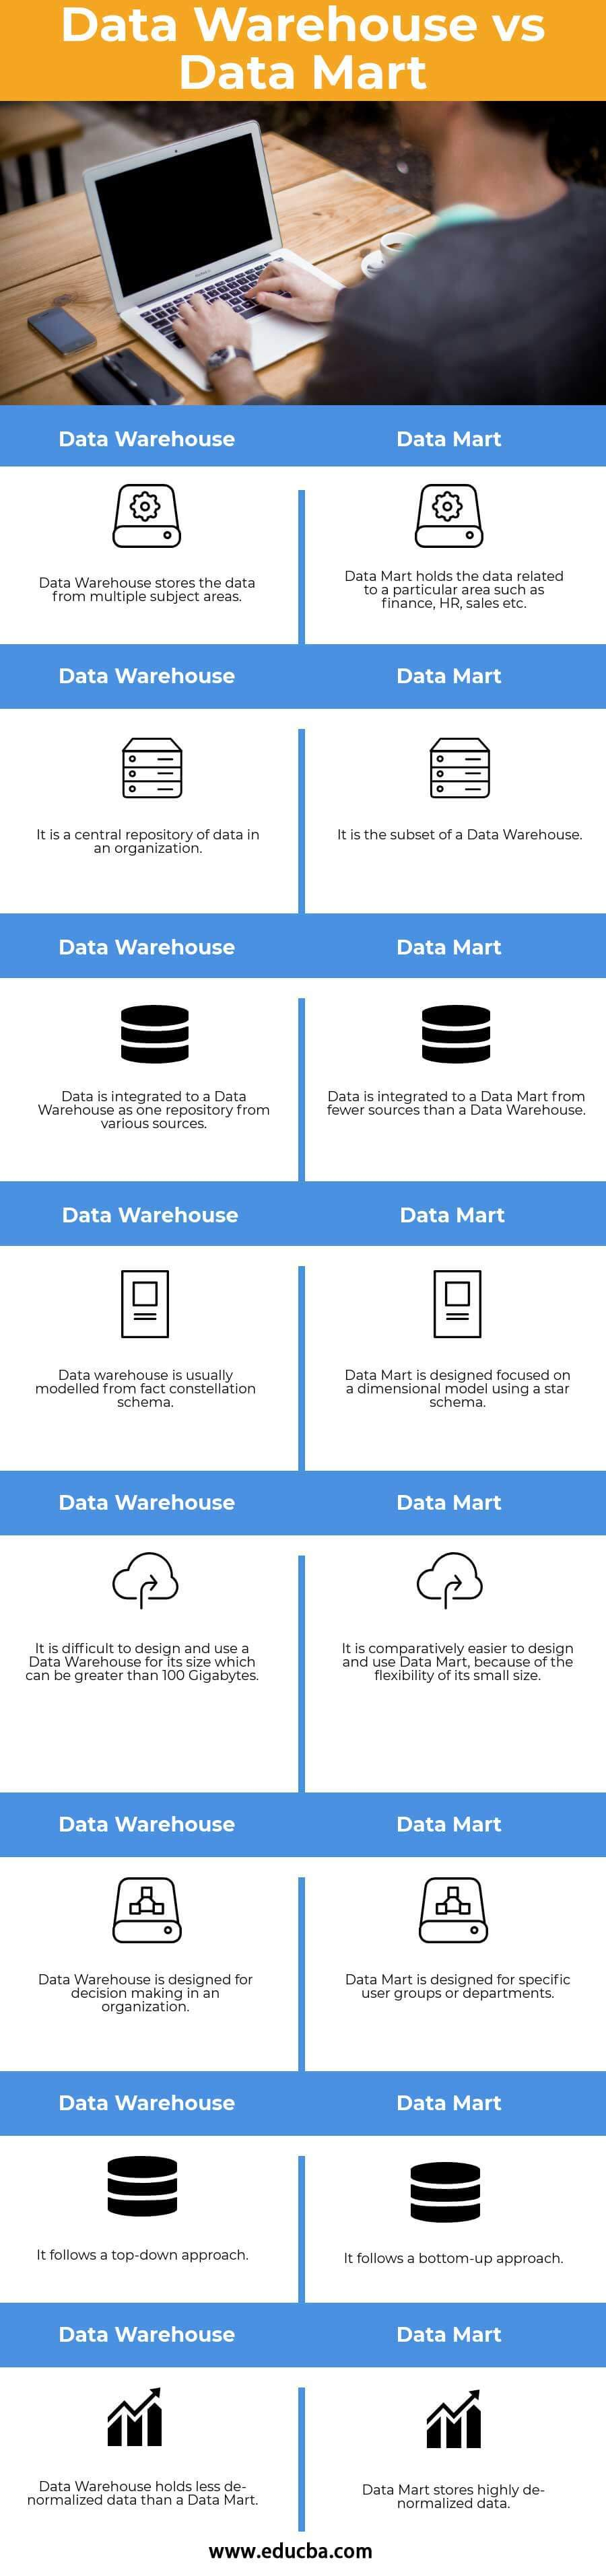 Data Warehouse vs Data Mart Infography